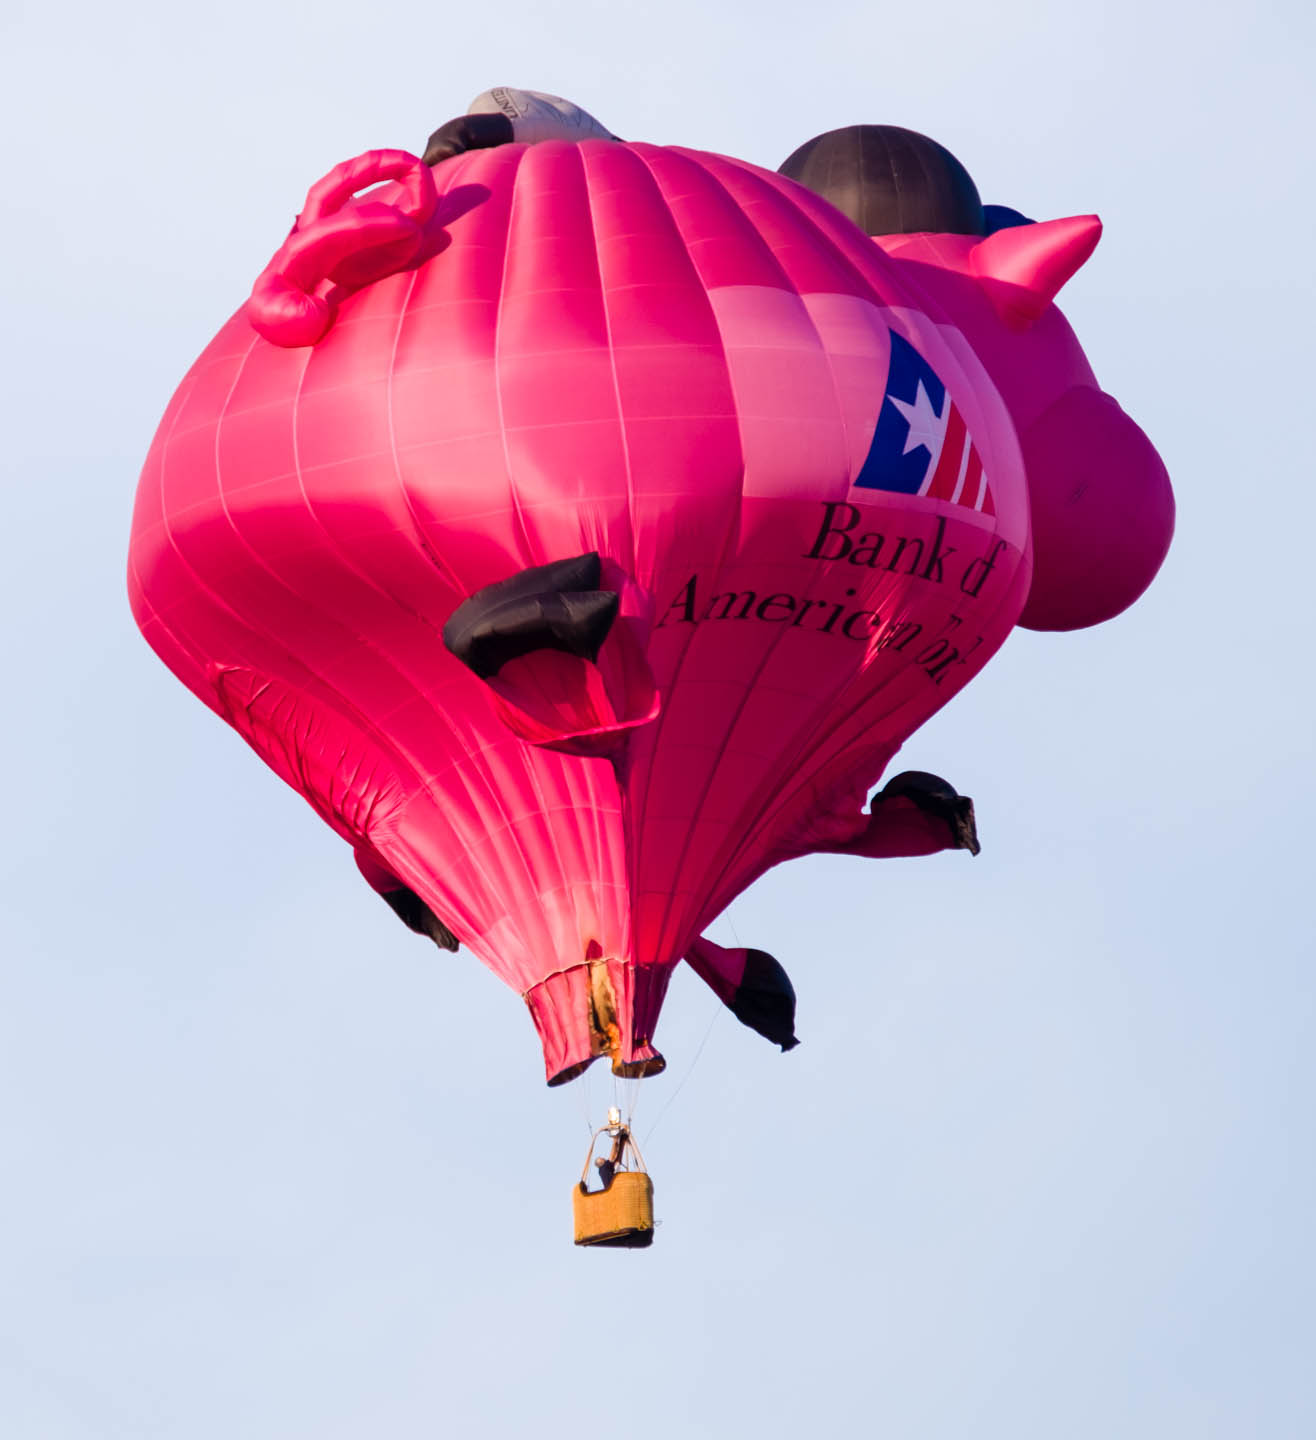 Pink pig hot air balloon photographed as it falls in Provo